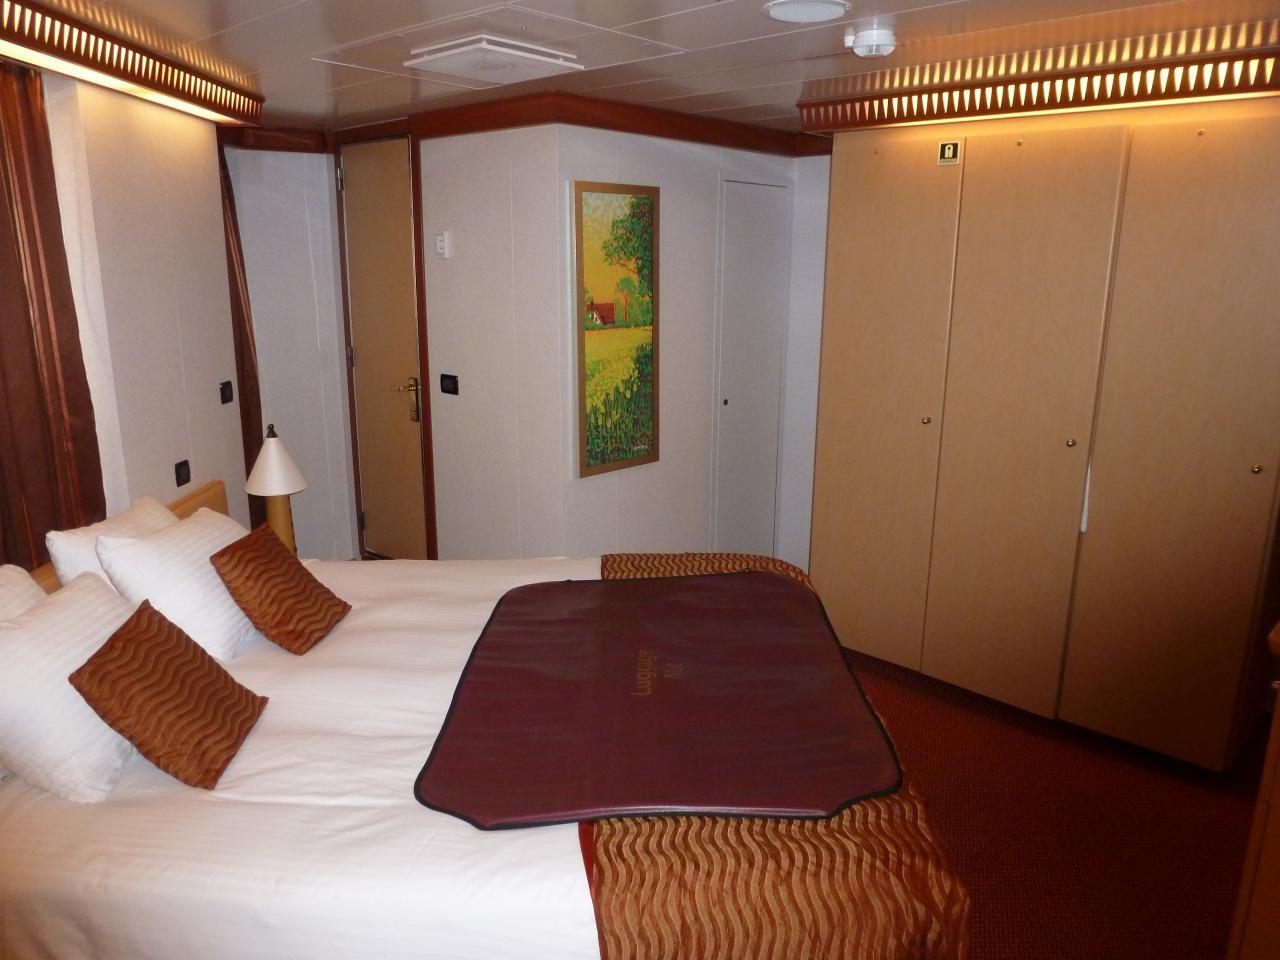 Carnival Dream Cruise Review For Cabin 7459